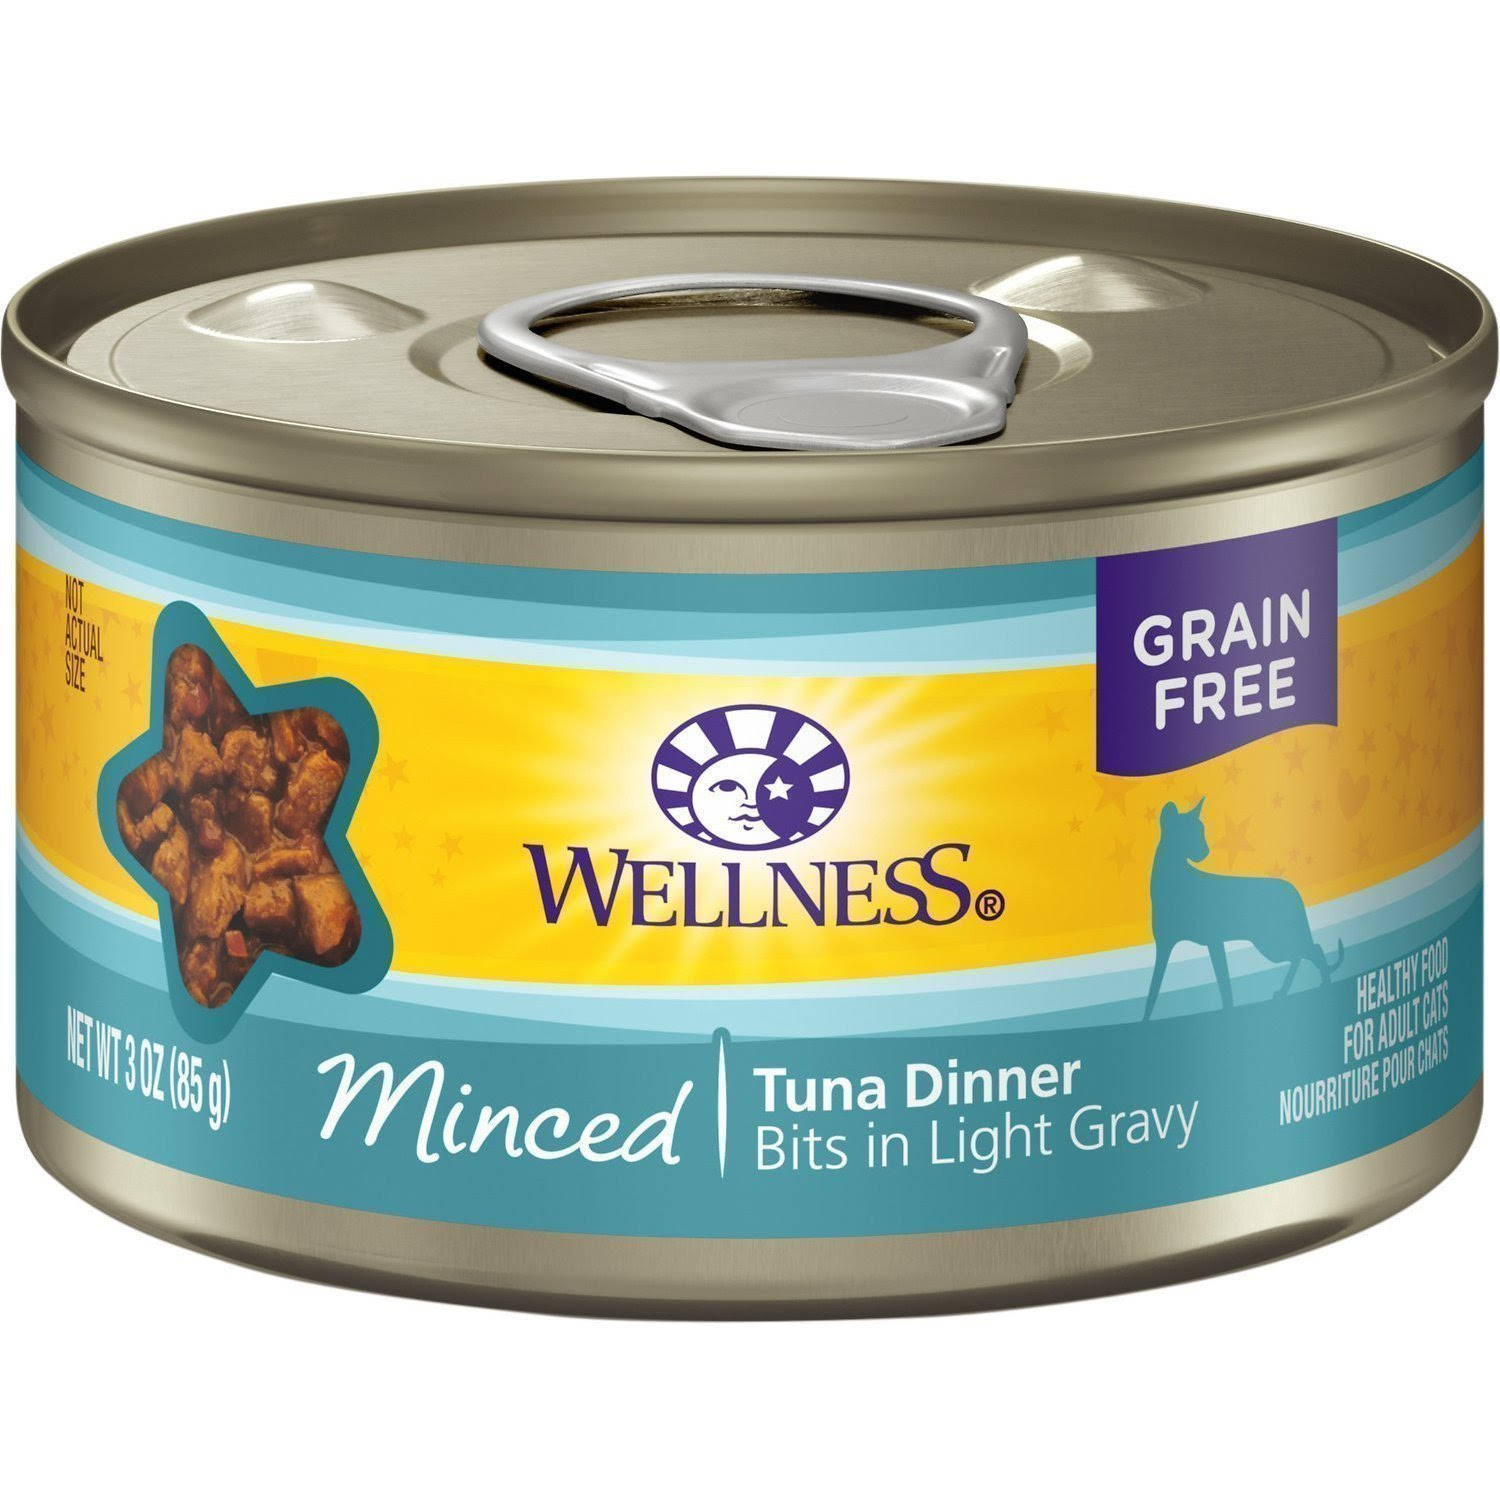 Wellness Minced Cuts Tuna Adult Canned Cat Food - 3oz